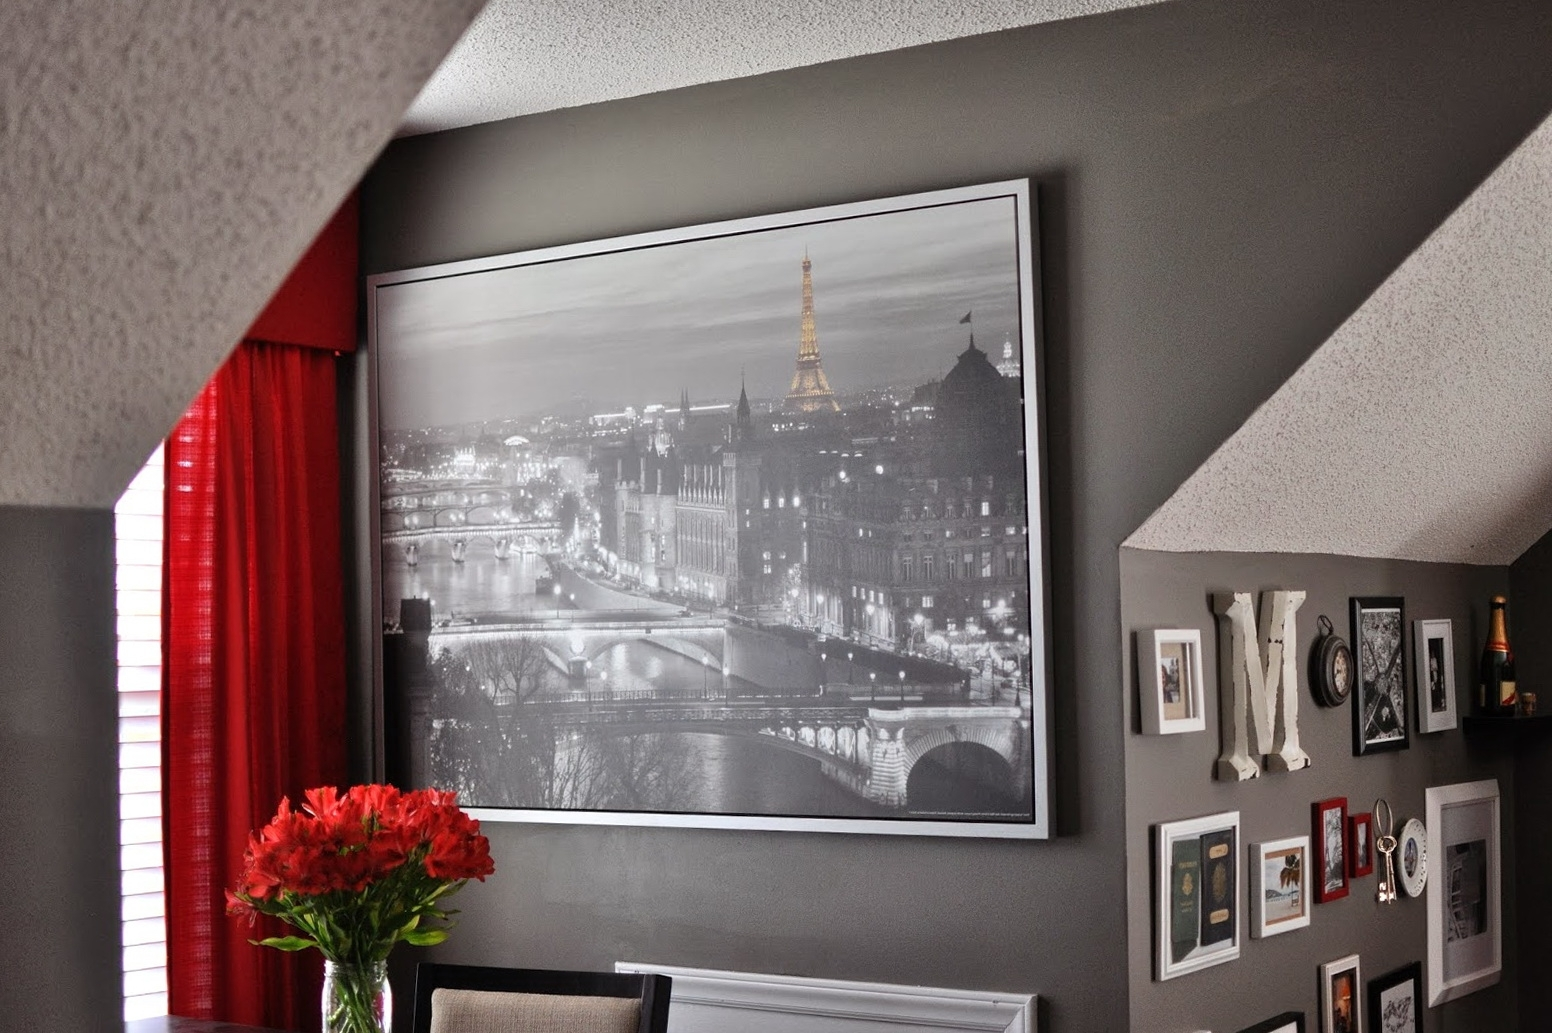 40 Super Design Ideas Ikea Wall Art Canvas | Panfan Site Throughout Most Popular Canvas Wall Art At Ikea (View 4 of 15)